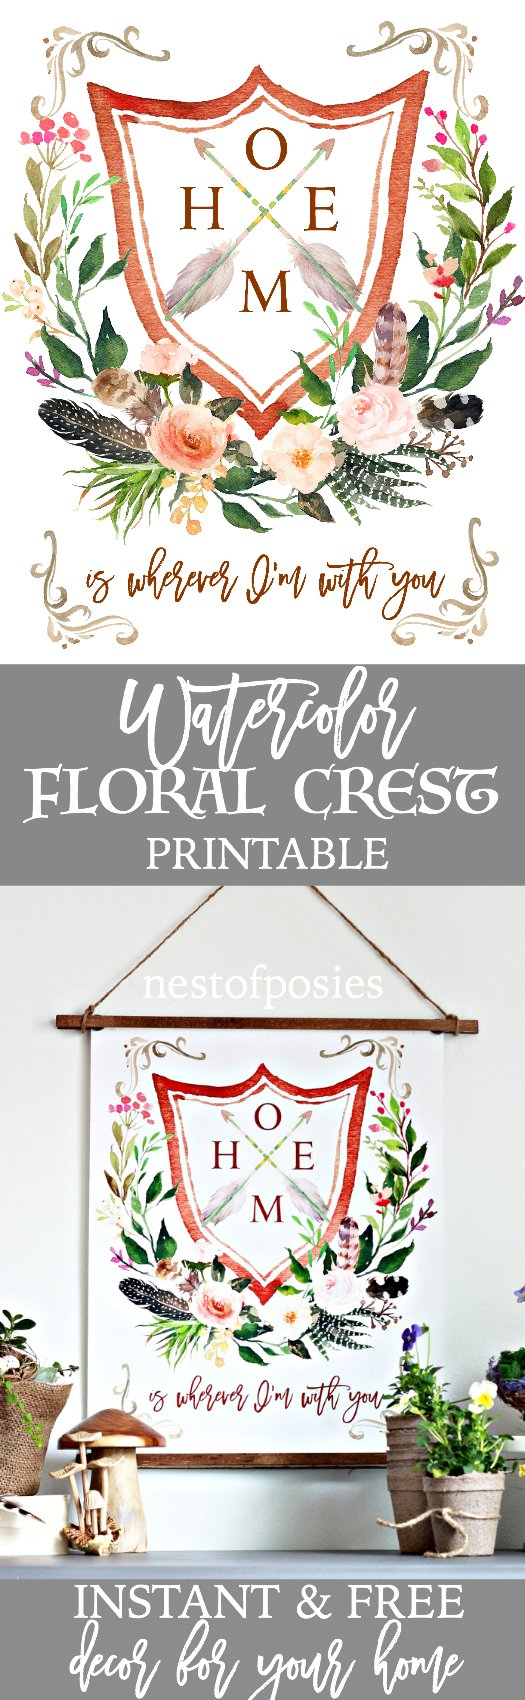 Watercolor Floral Crest Printable. Instant and free decor for your home